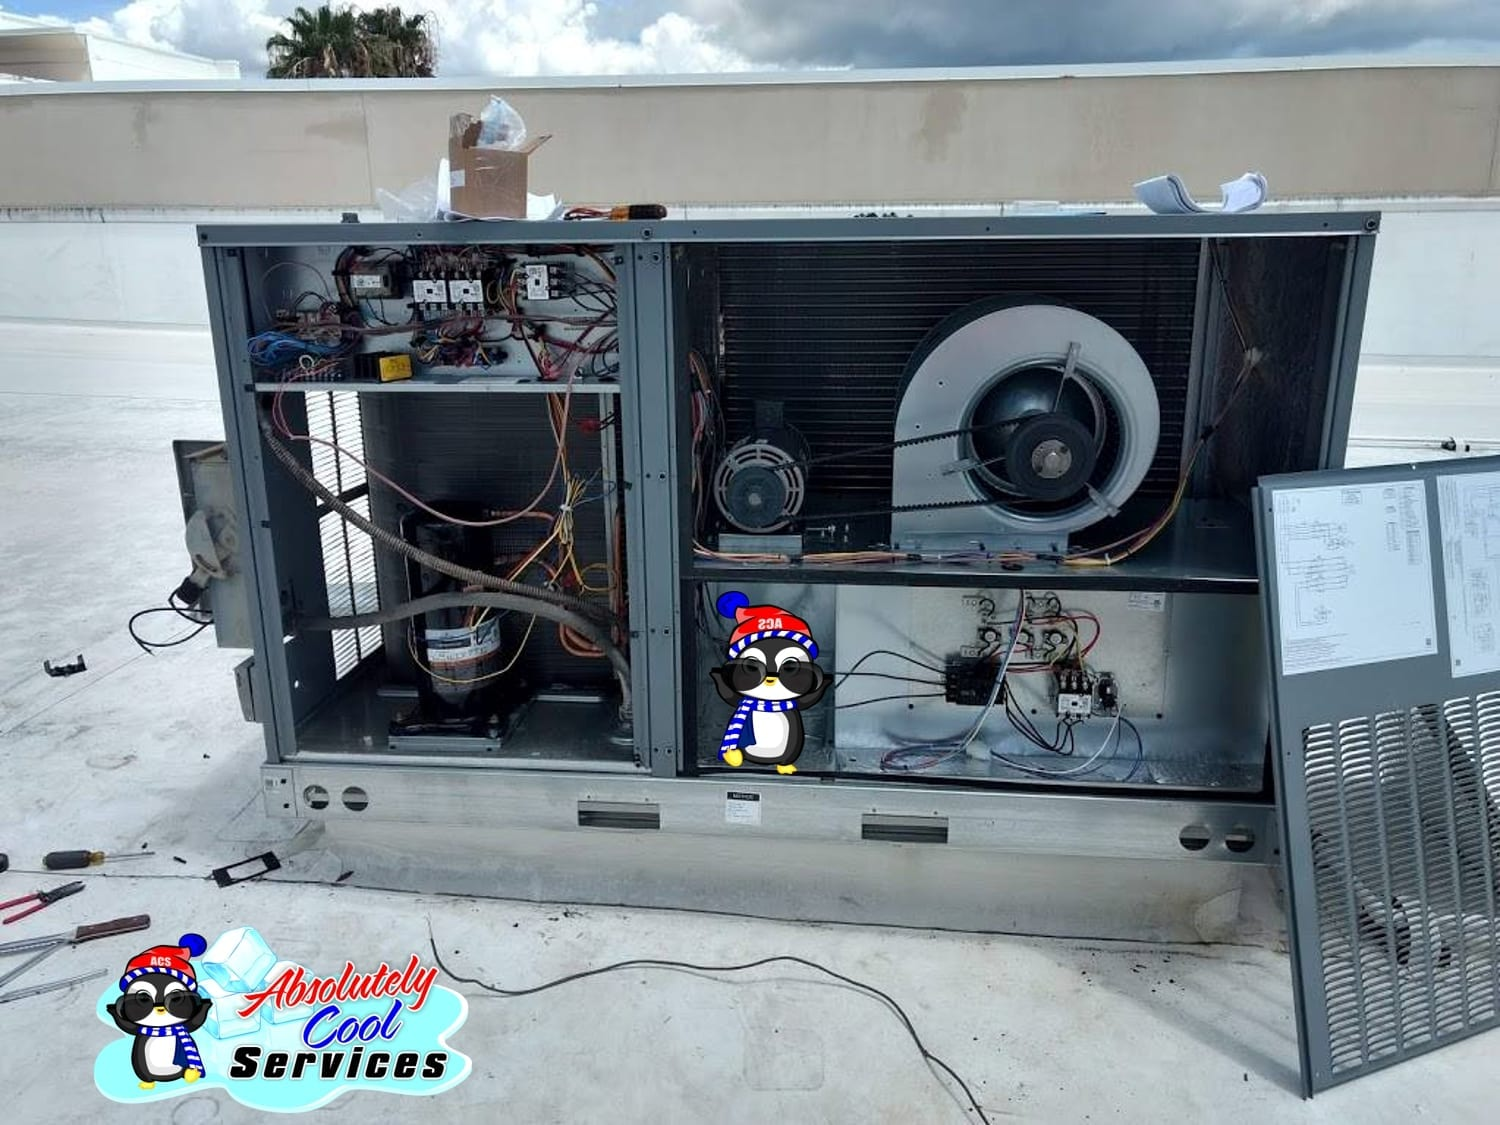 Roof Air Conditioning | Air Conditioning Repair Service near Royal Palm Beach